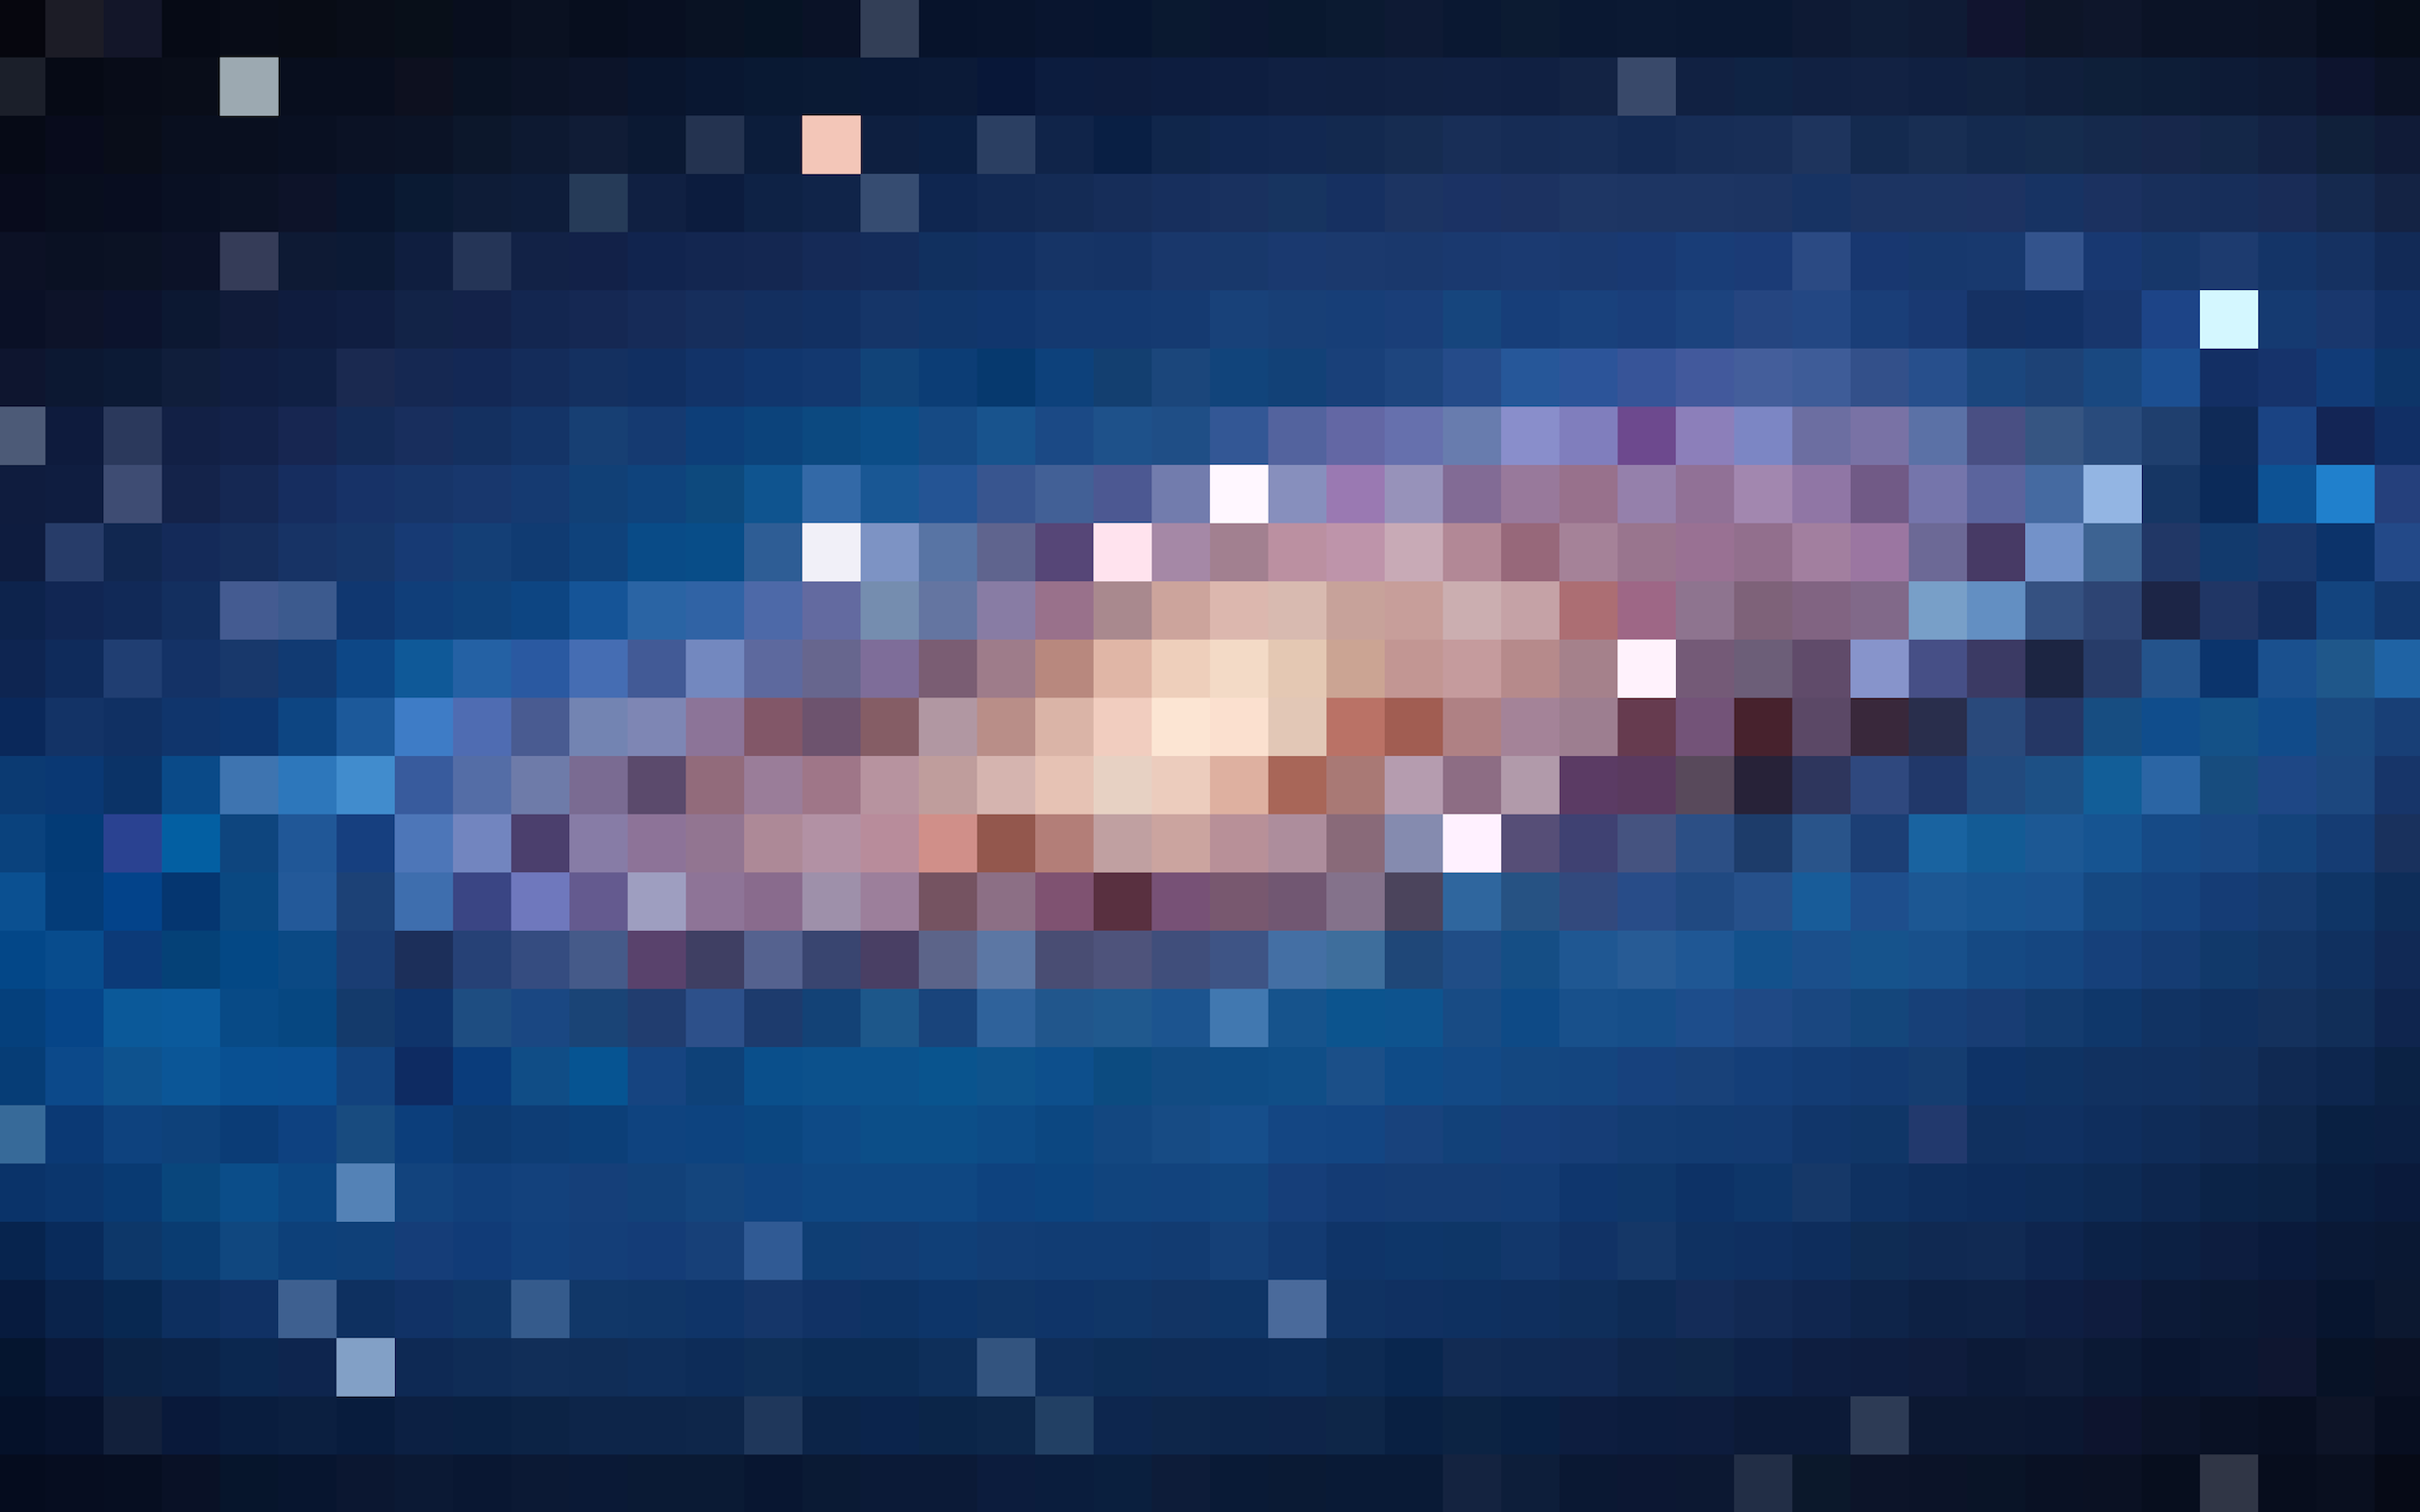 Galaxy In 8 Bit Pixel Art